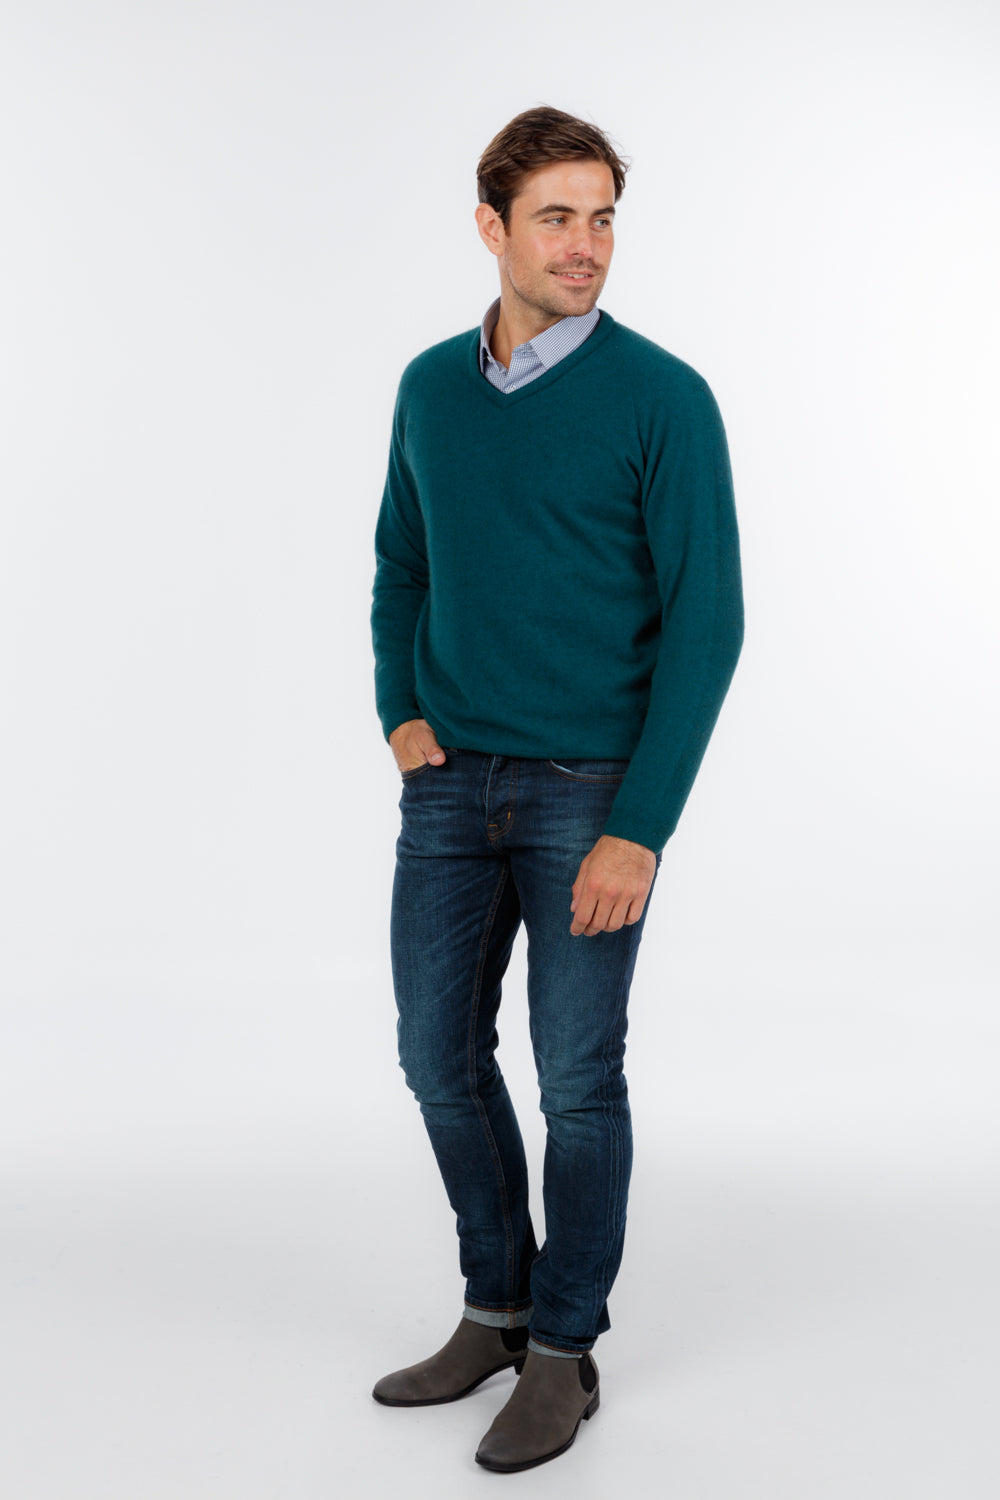 Mens V Neck sweater. Long sleeves with ribbed cuff and waist band.